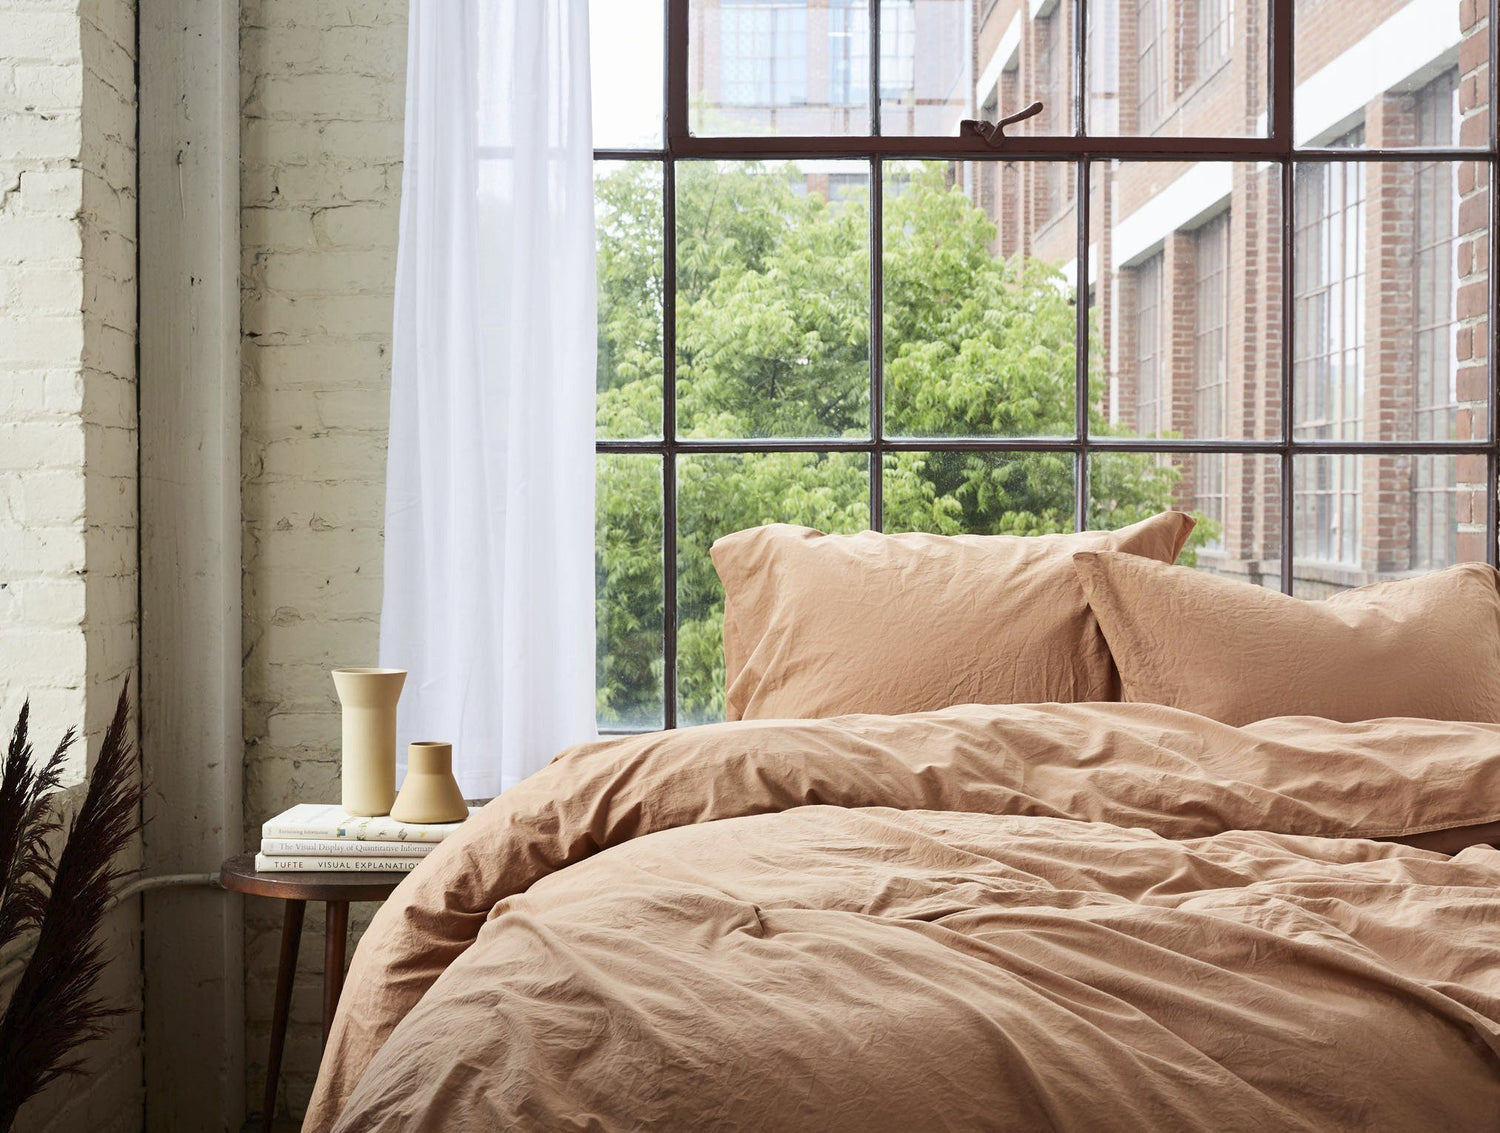 Coyuchi Organic Crinkled Percale Pillowcase - Ginger Bedding and Bath Coyuchi